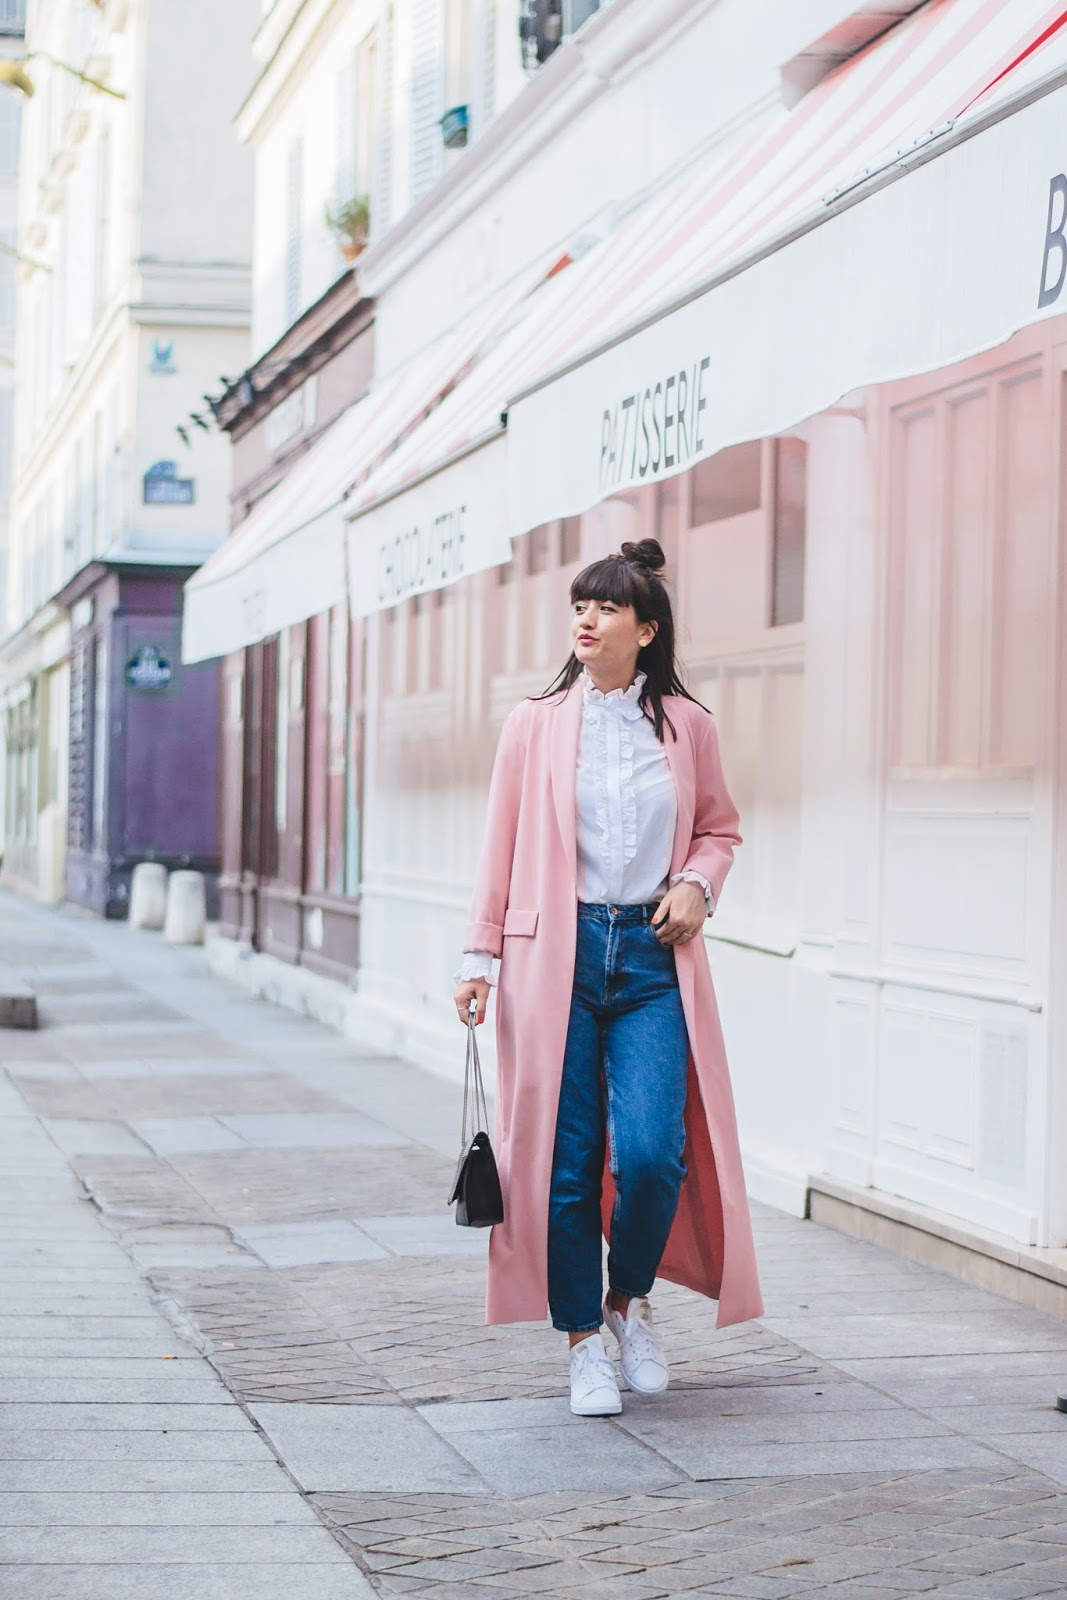 meetmeinparee-paris-style-look-mode-fashion-meetmeinparee-cool-streetstyle